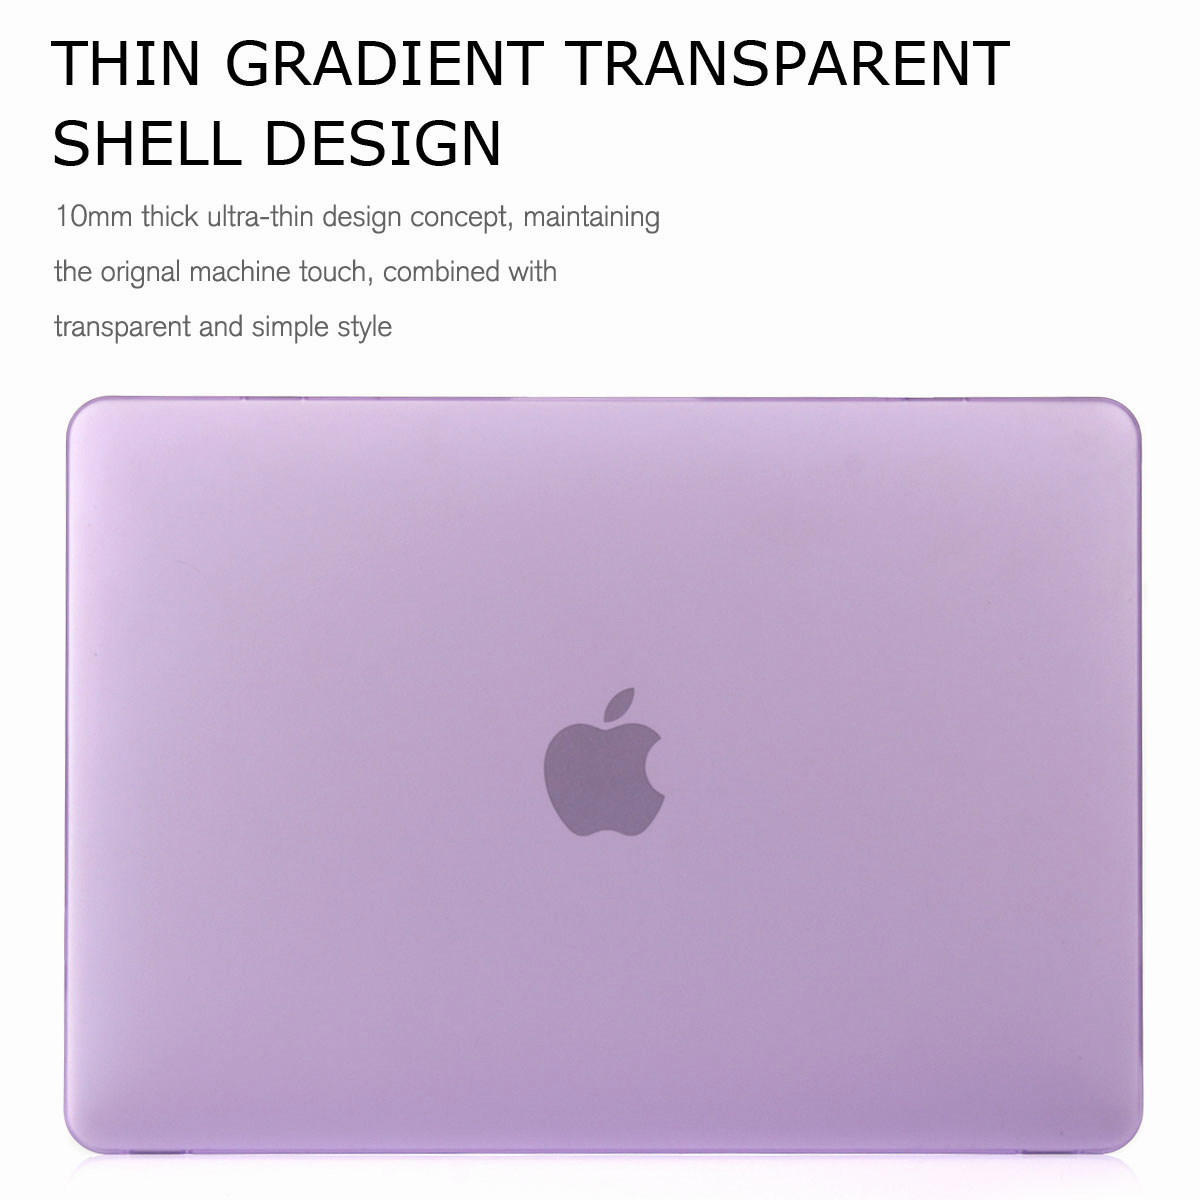 Shockproof-Rubberized-Matte-Hard-Case-Cover-For-Macbook-13-034-15-034-Inch-A1286-A1278 thumbnail 70